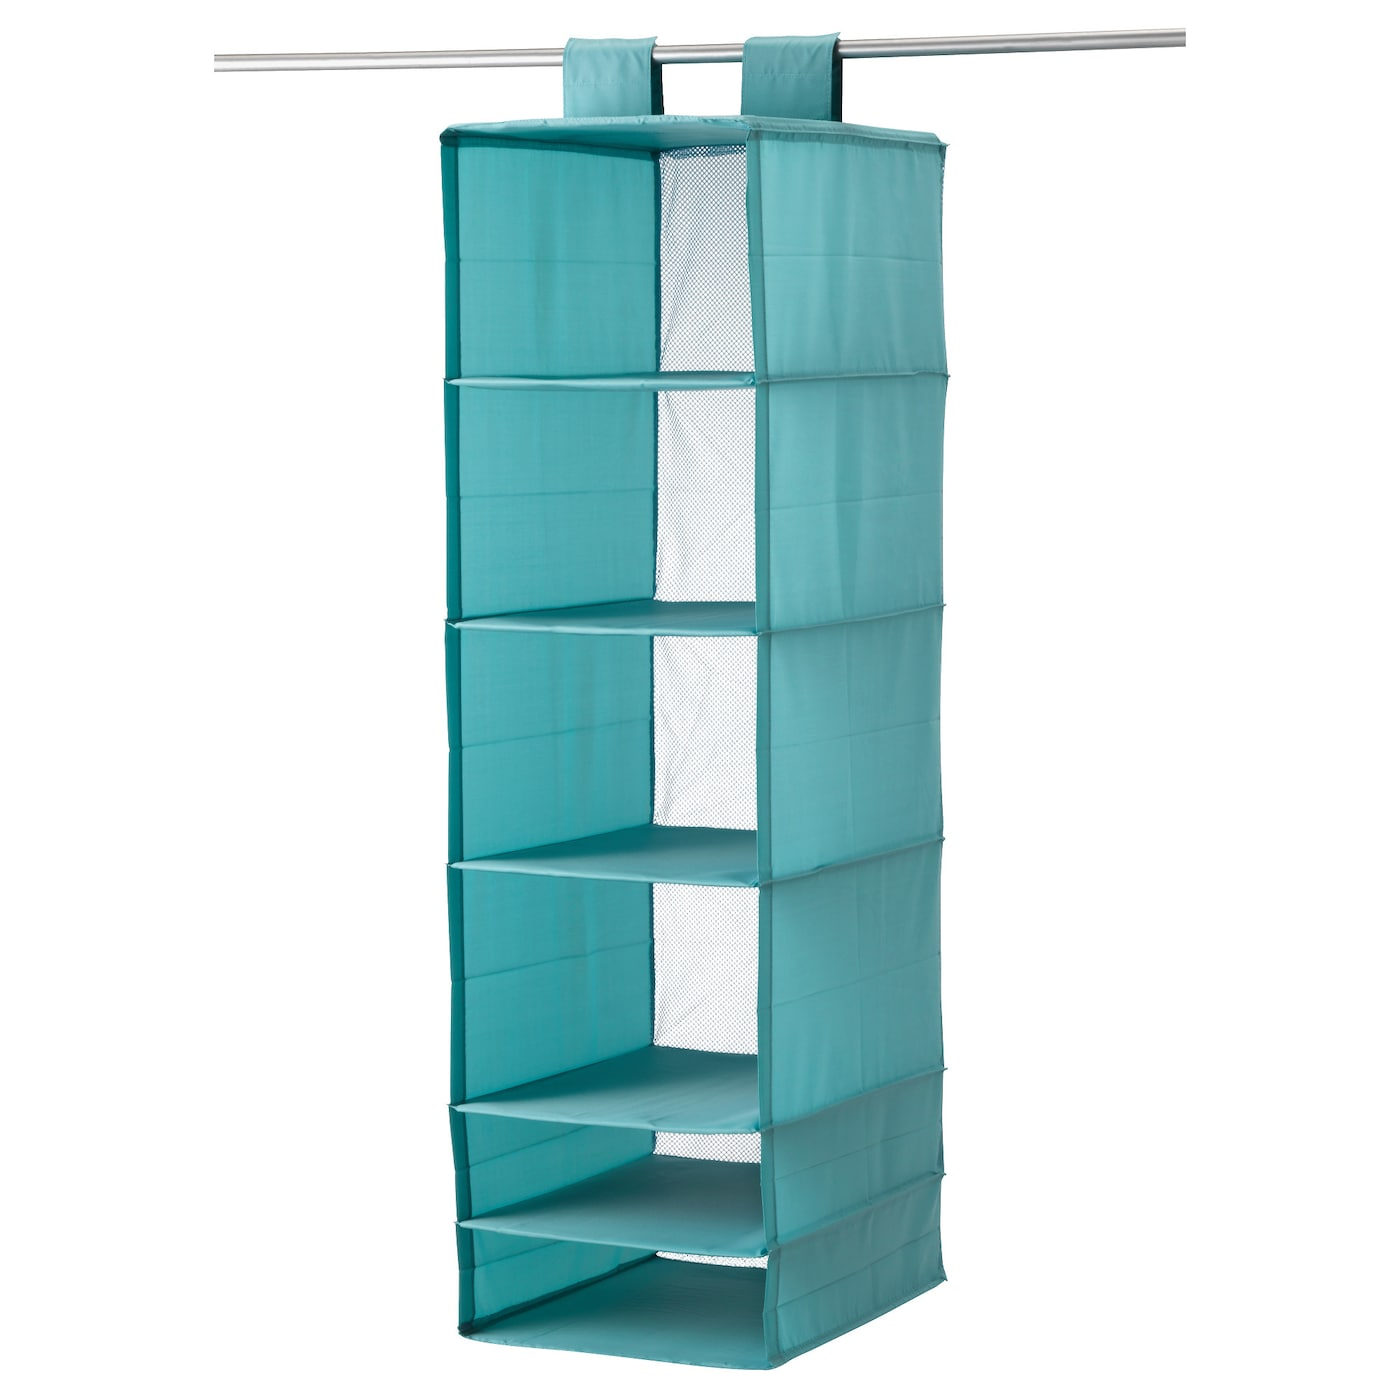 skubb storage with 6 compartments light blue 35 x 45 x 125 cm ikea. Black Bedroom Furniture Sets. Home Design Ideas